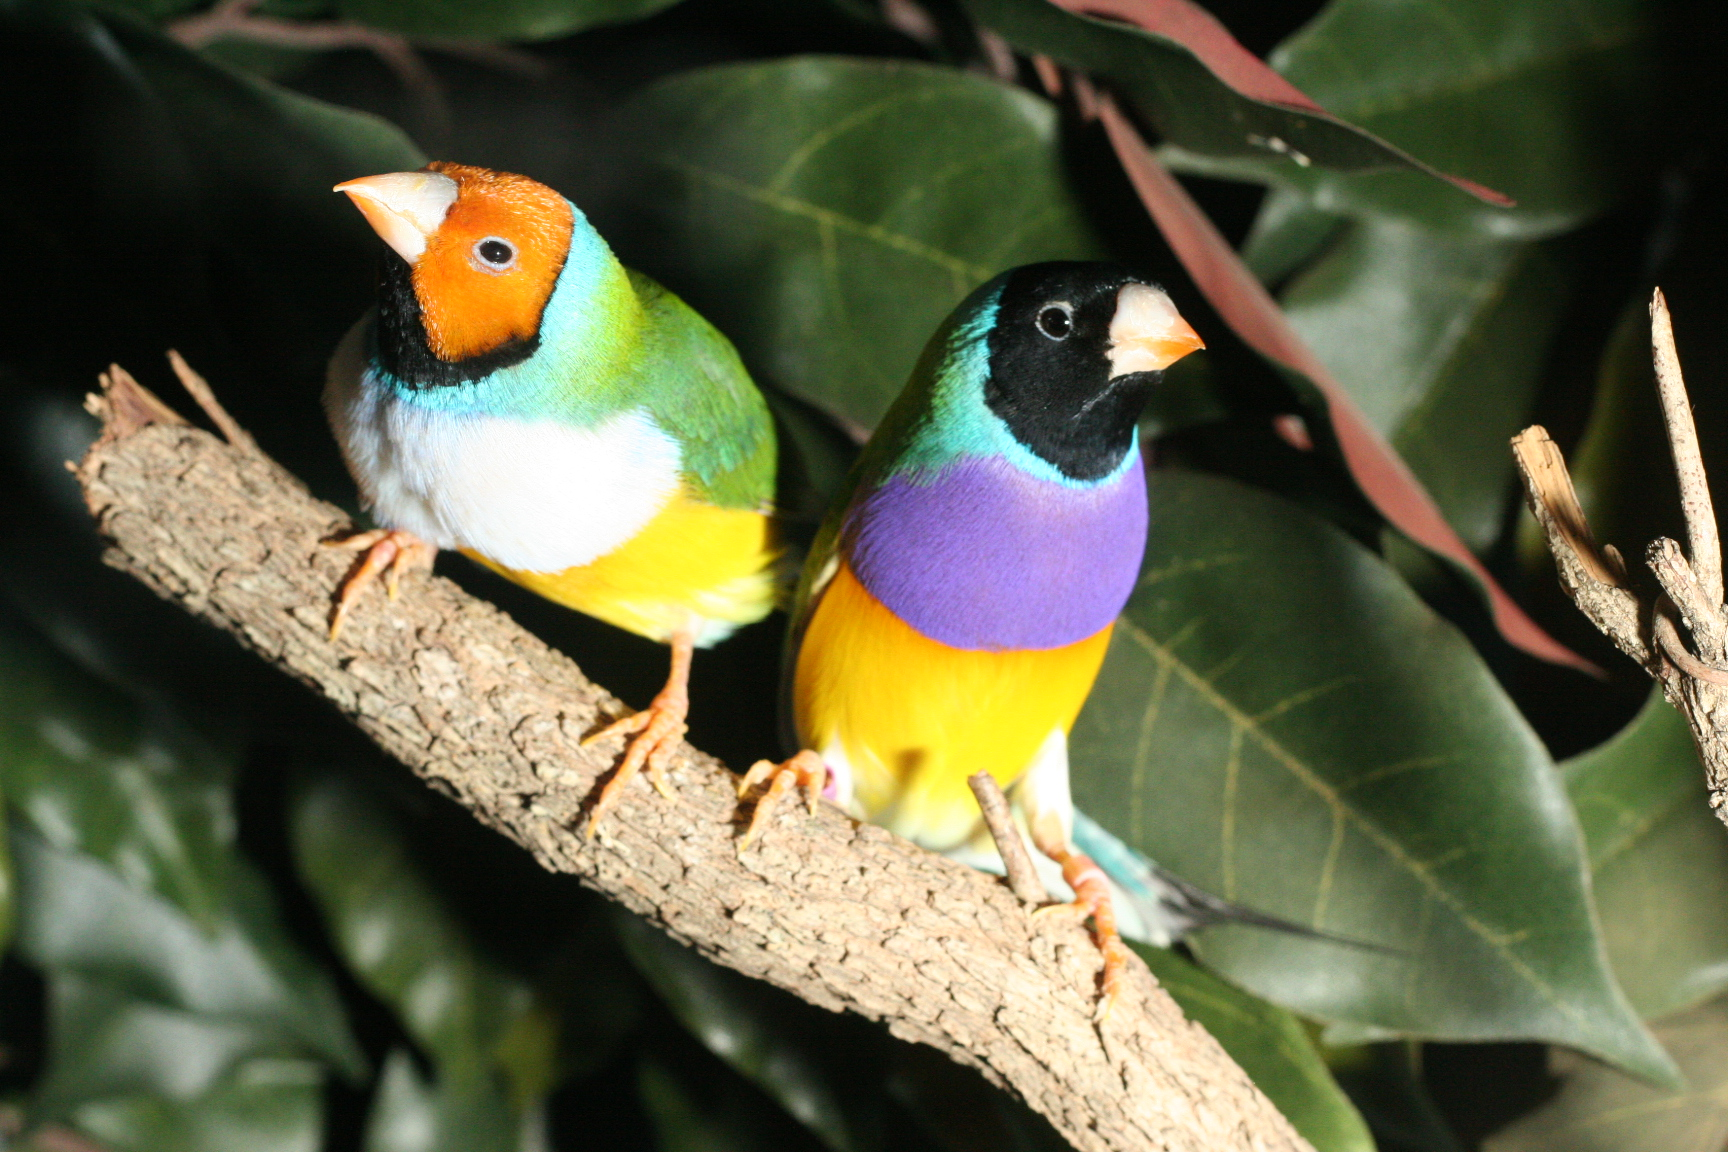 Two colorful birds sitting on tree branch, one with black face and one with orange face